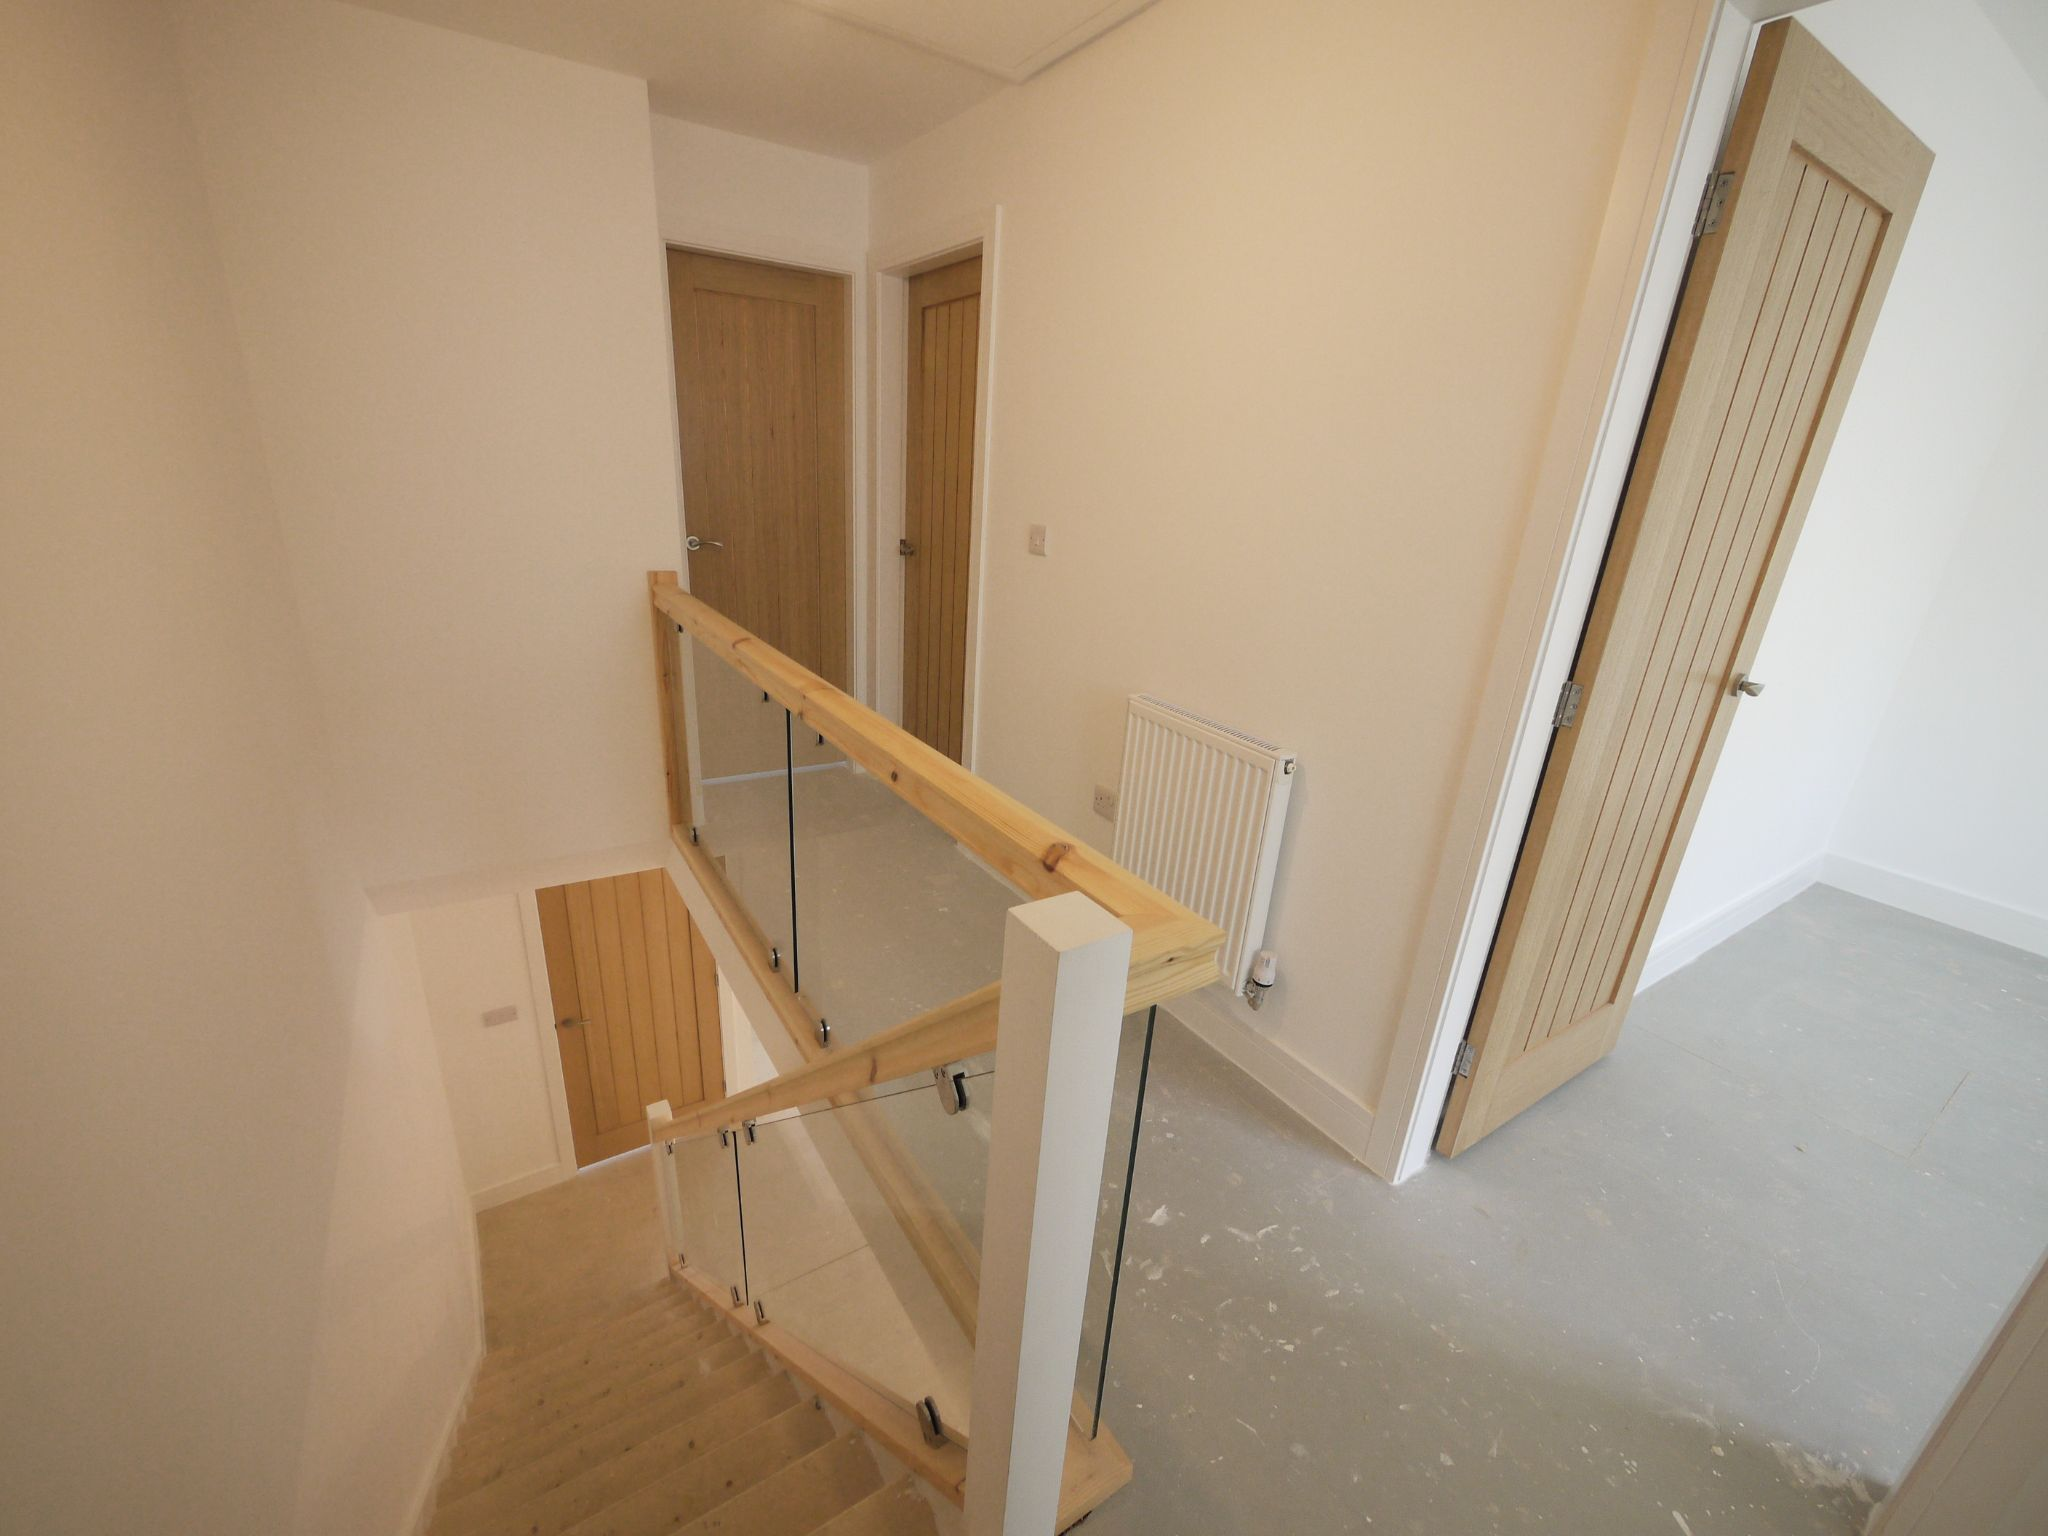 3 bedroom detached house SSTC in Brighouse - Photograph 8.